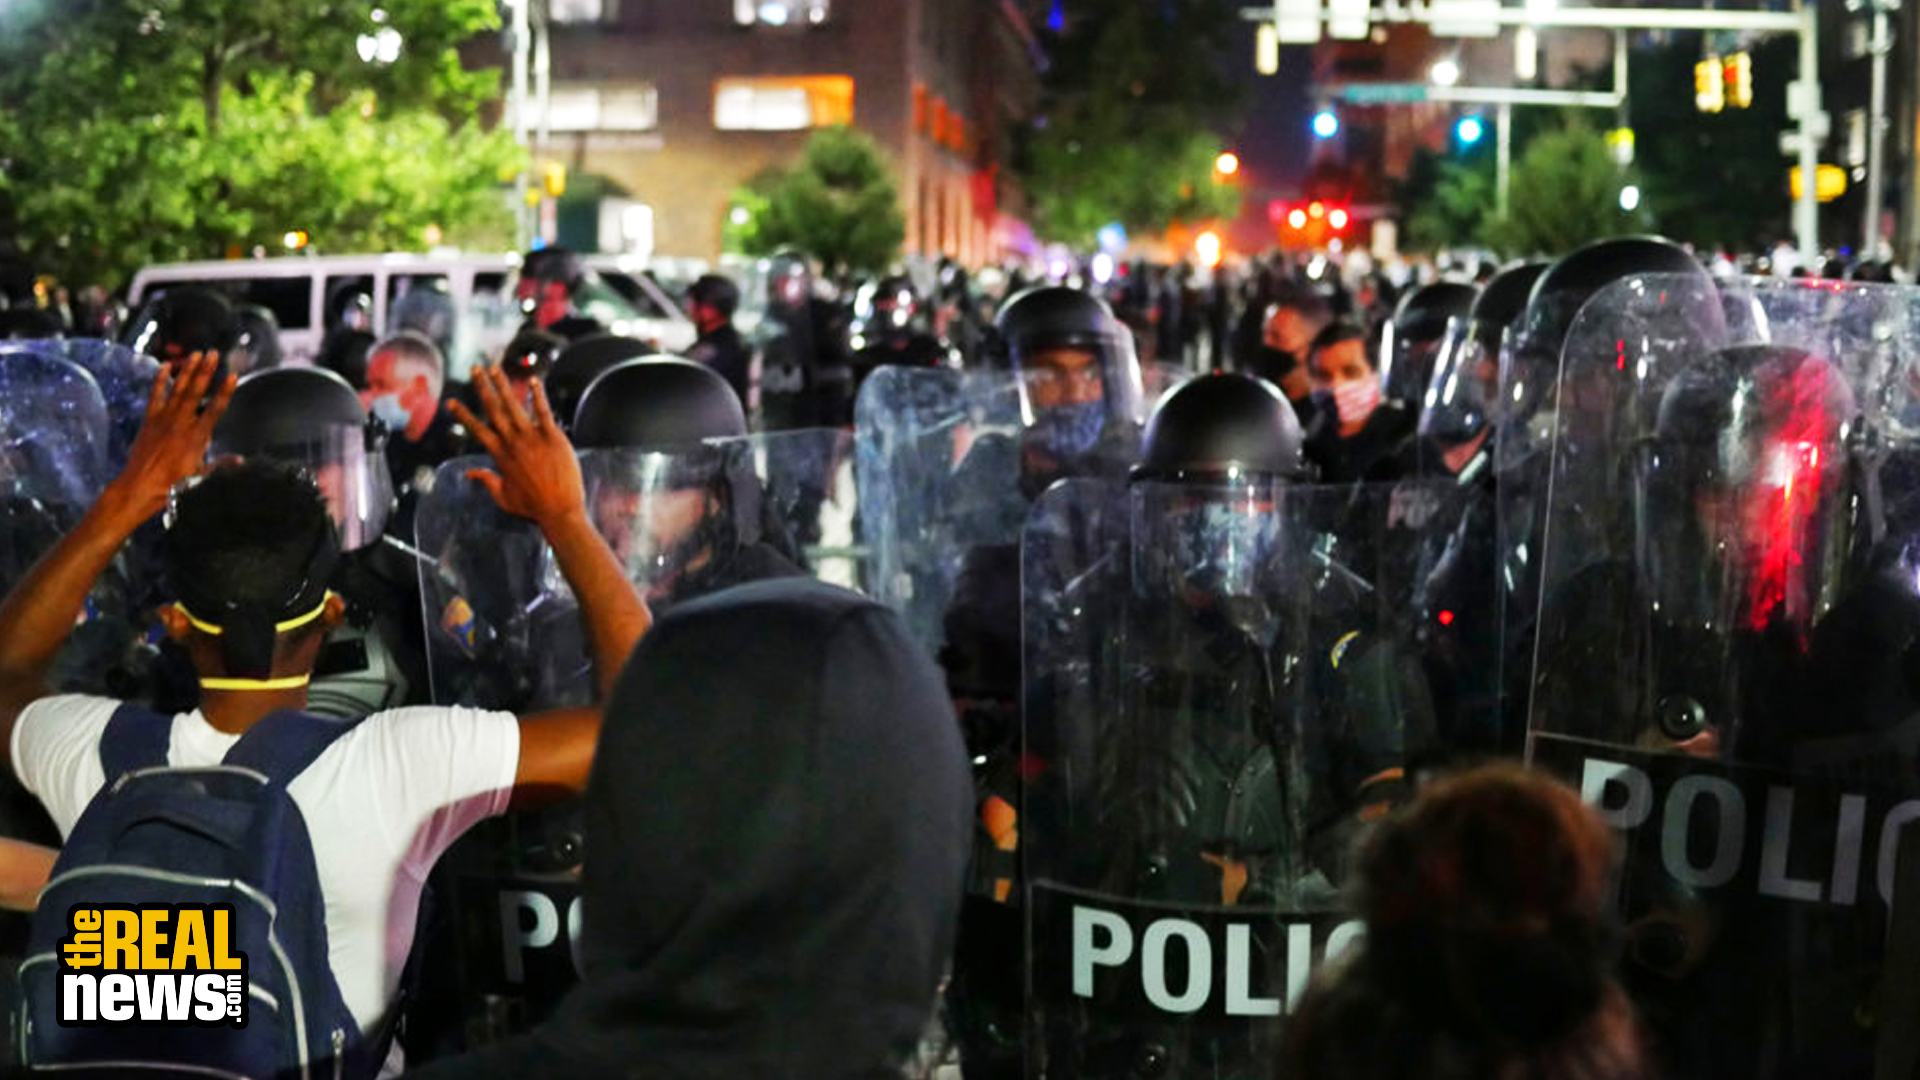 Police Intensify Repression Of Protests Demanding Justice For George Floyd